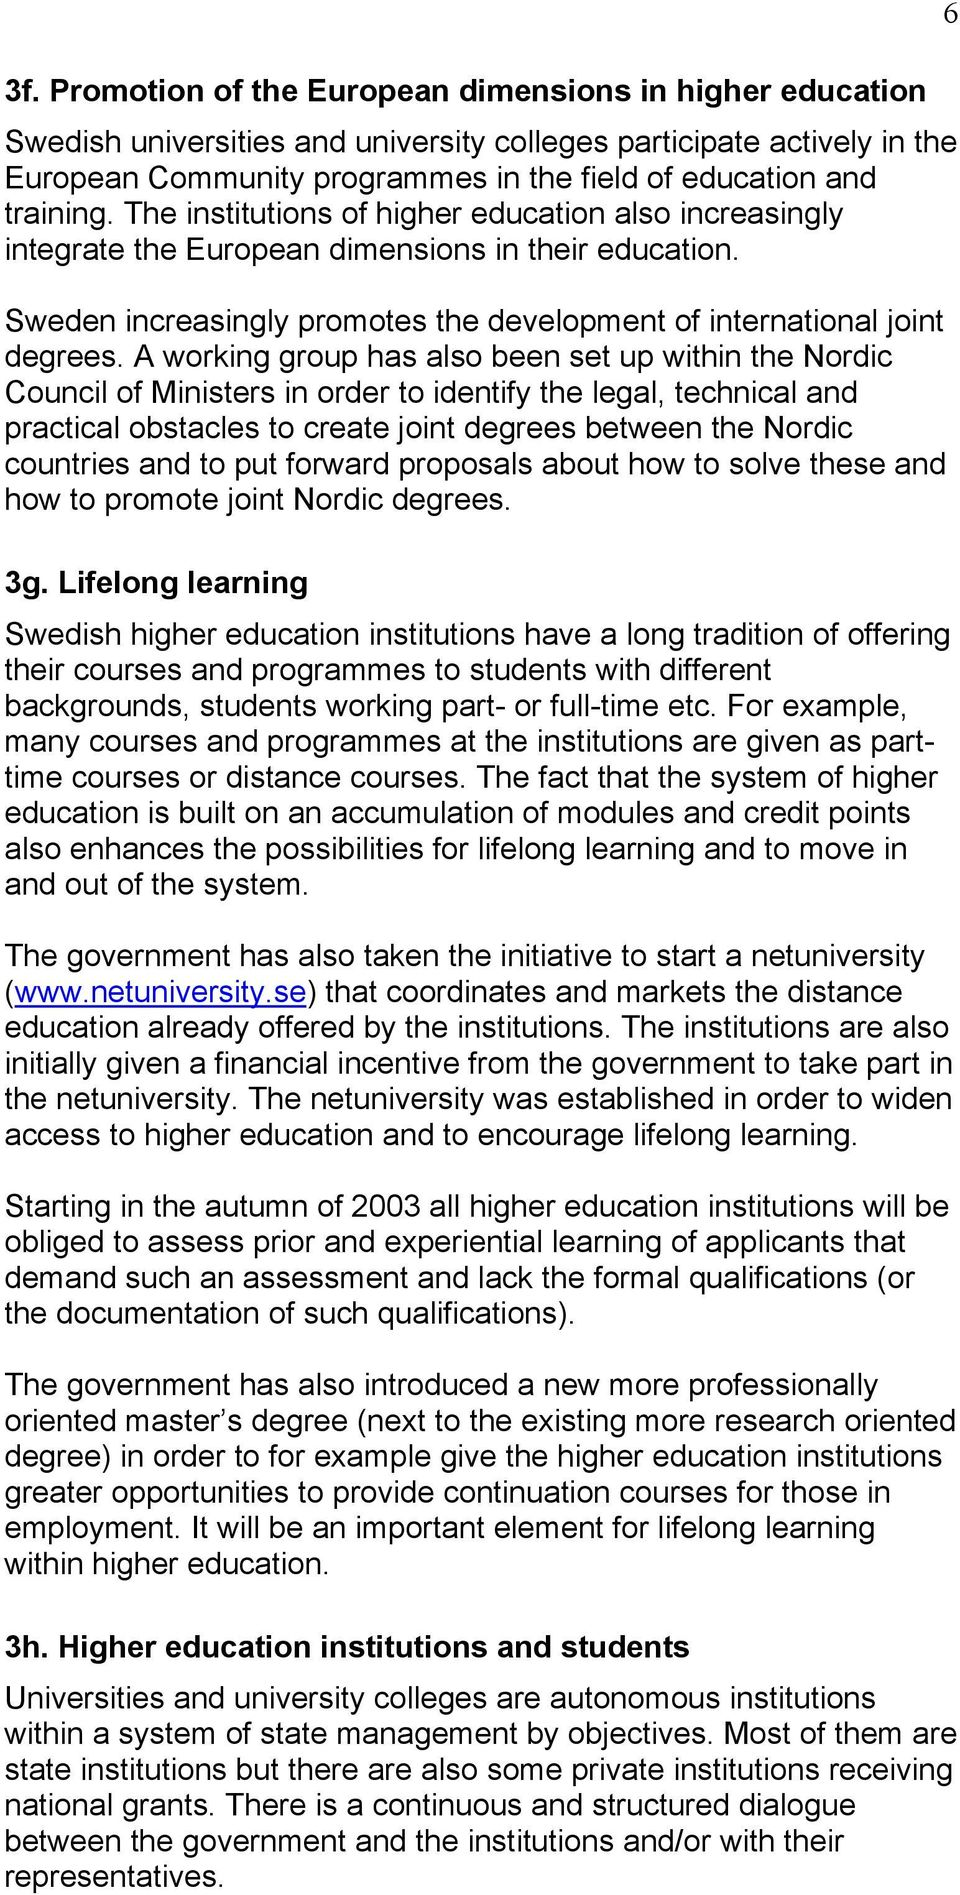 A working group has also been set up within the Nordic Council of Ministers in order to identify the legal, technical and practical obstacles to create joint degrees between the Nordic countries and